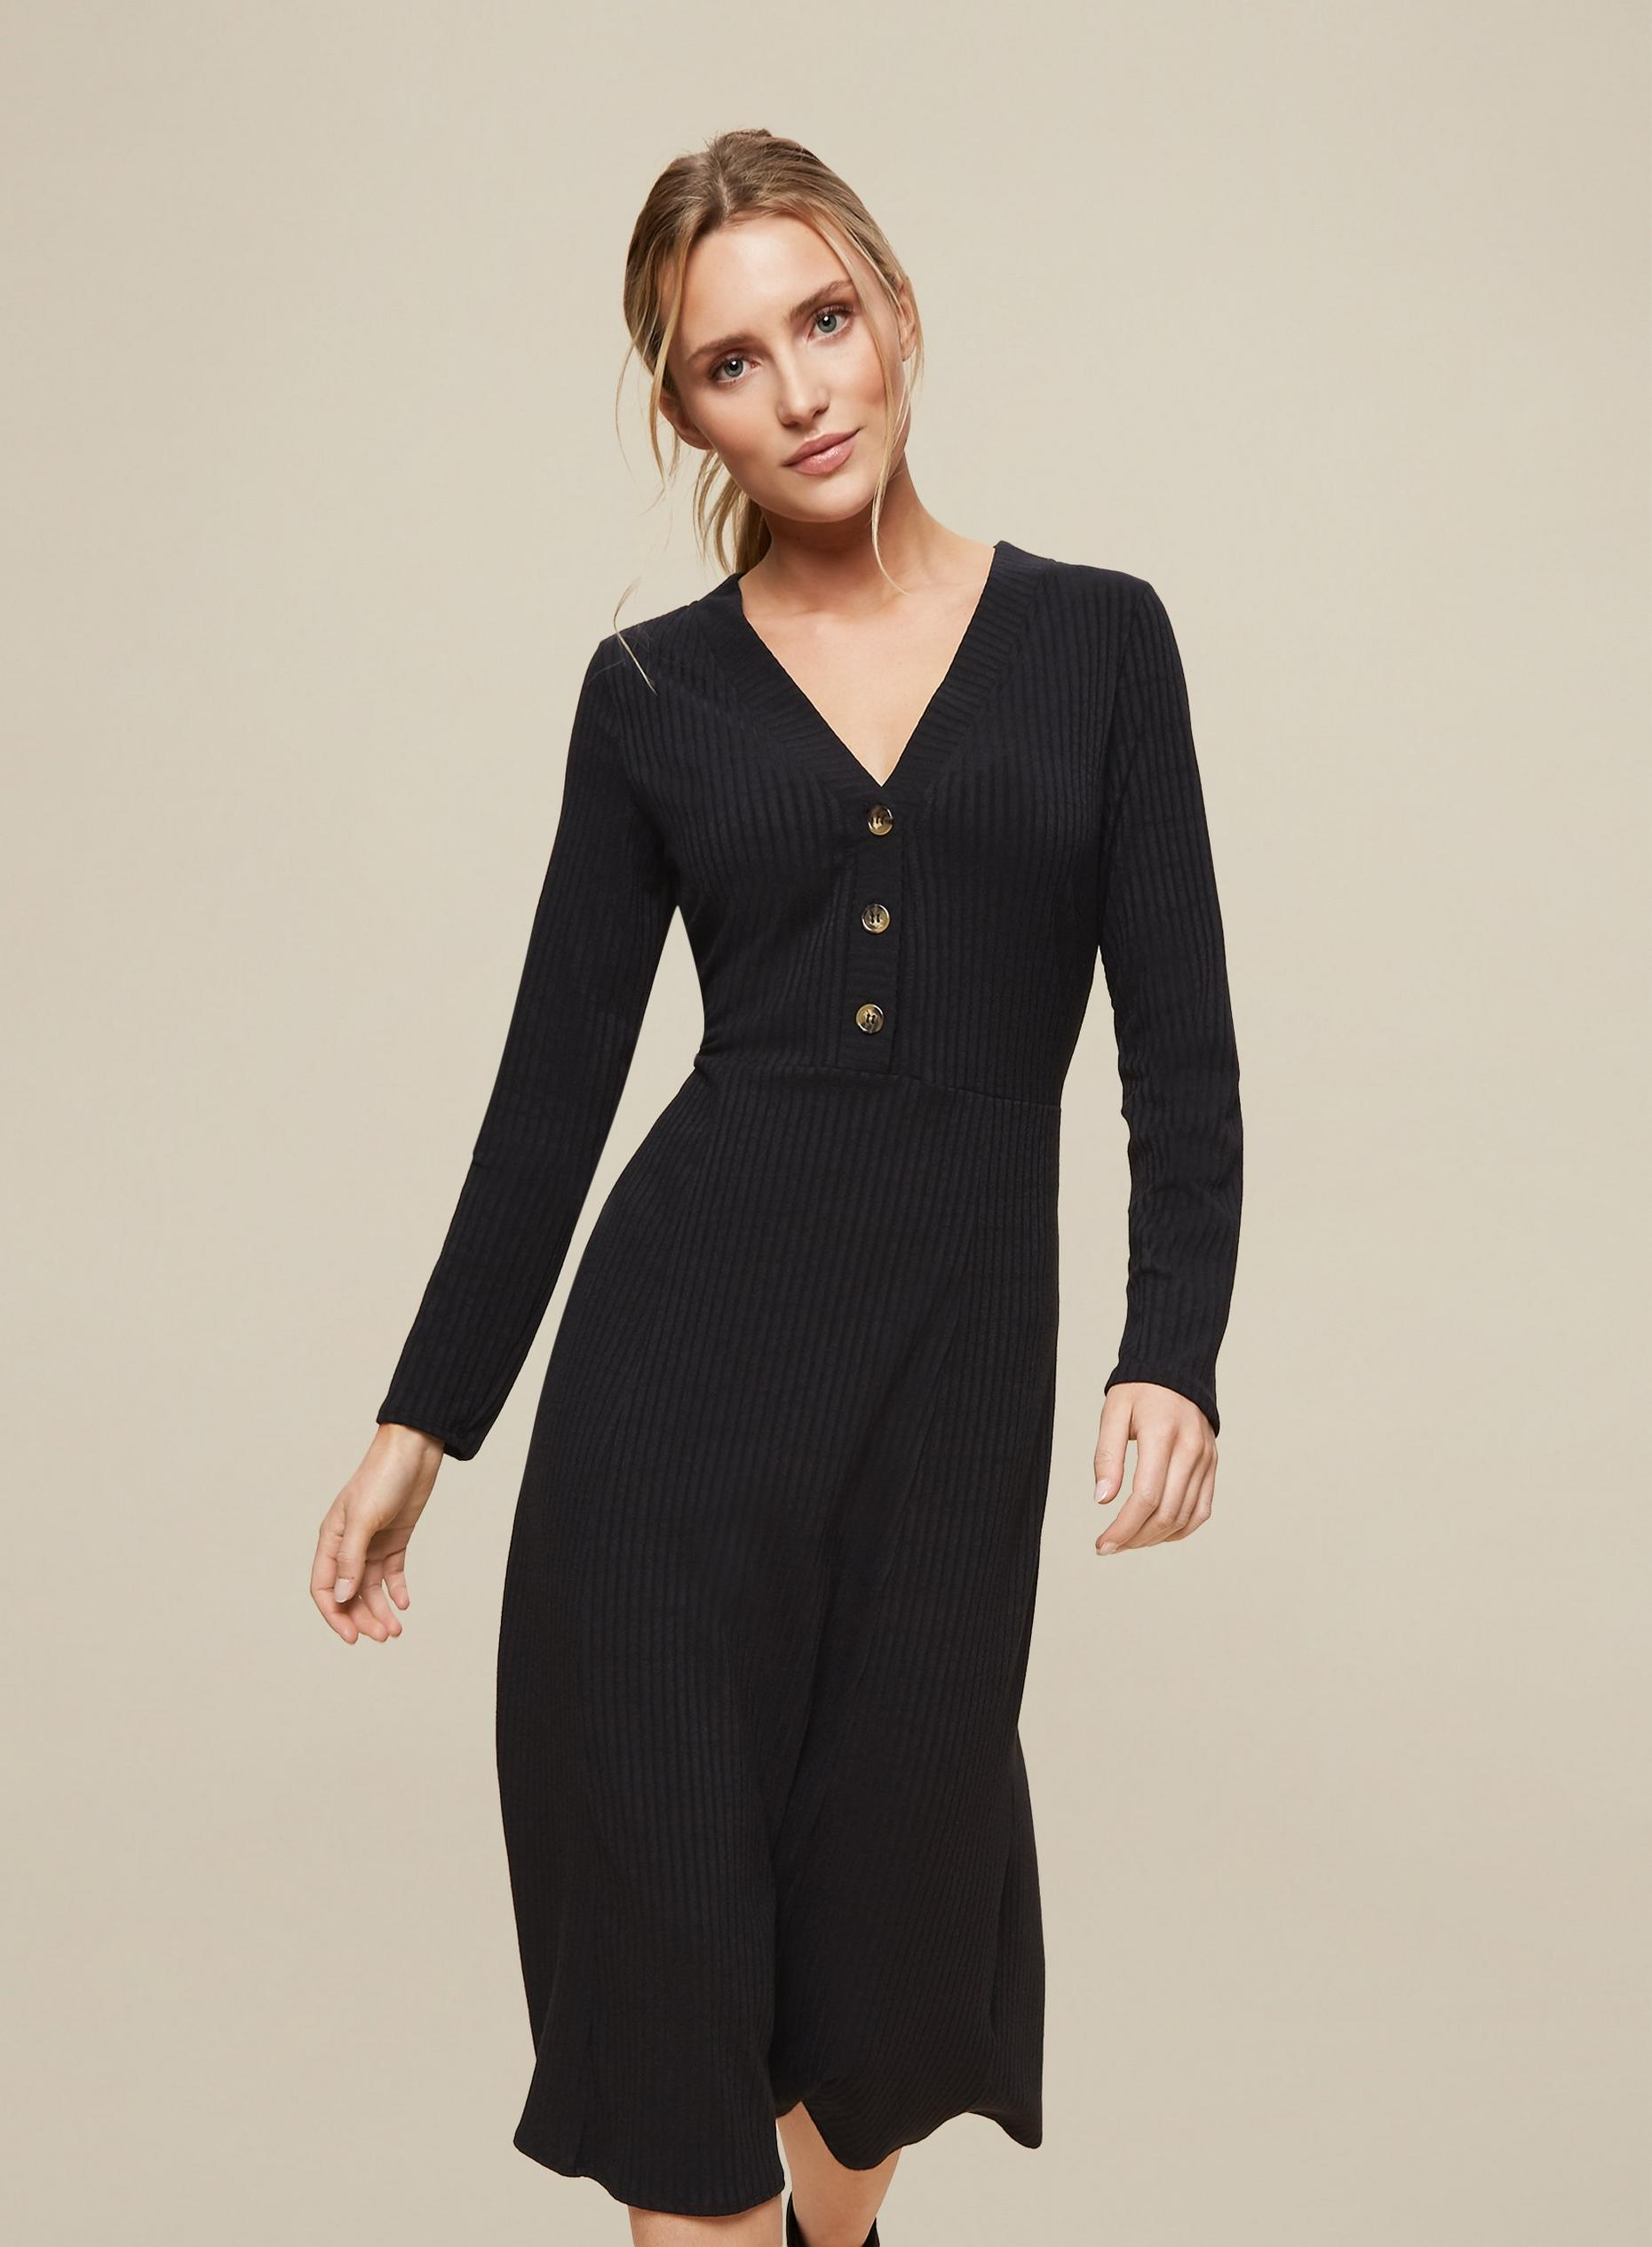 Black Rib Button Dress